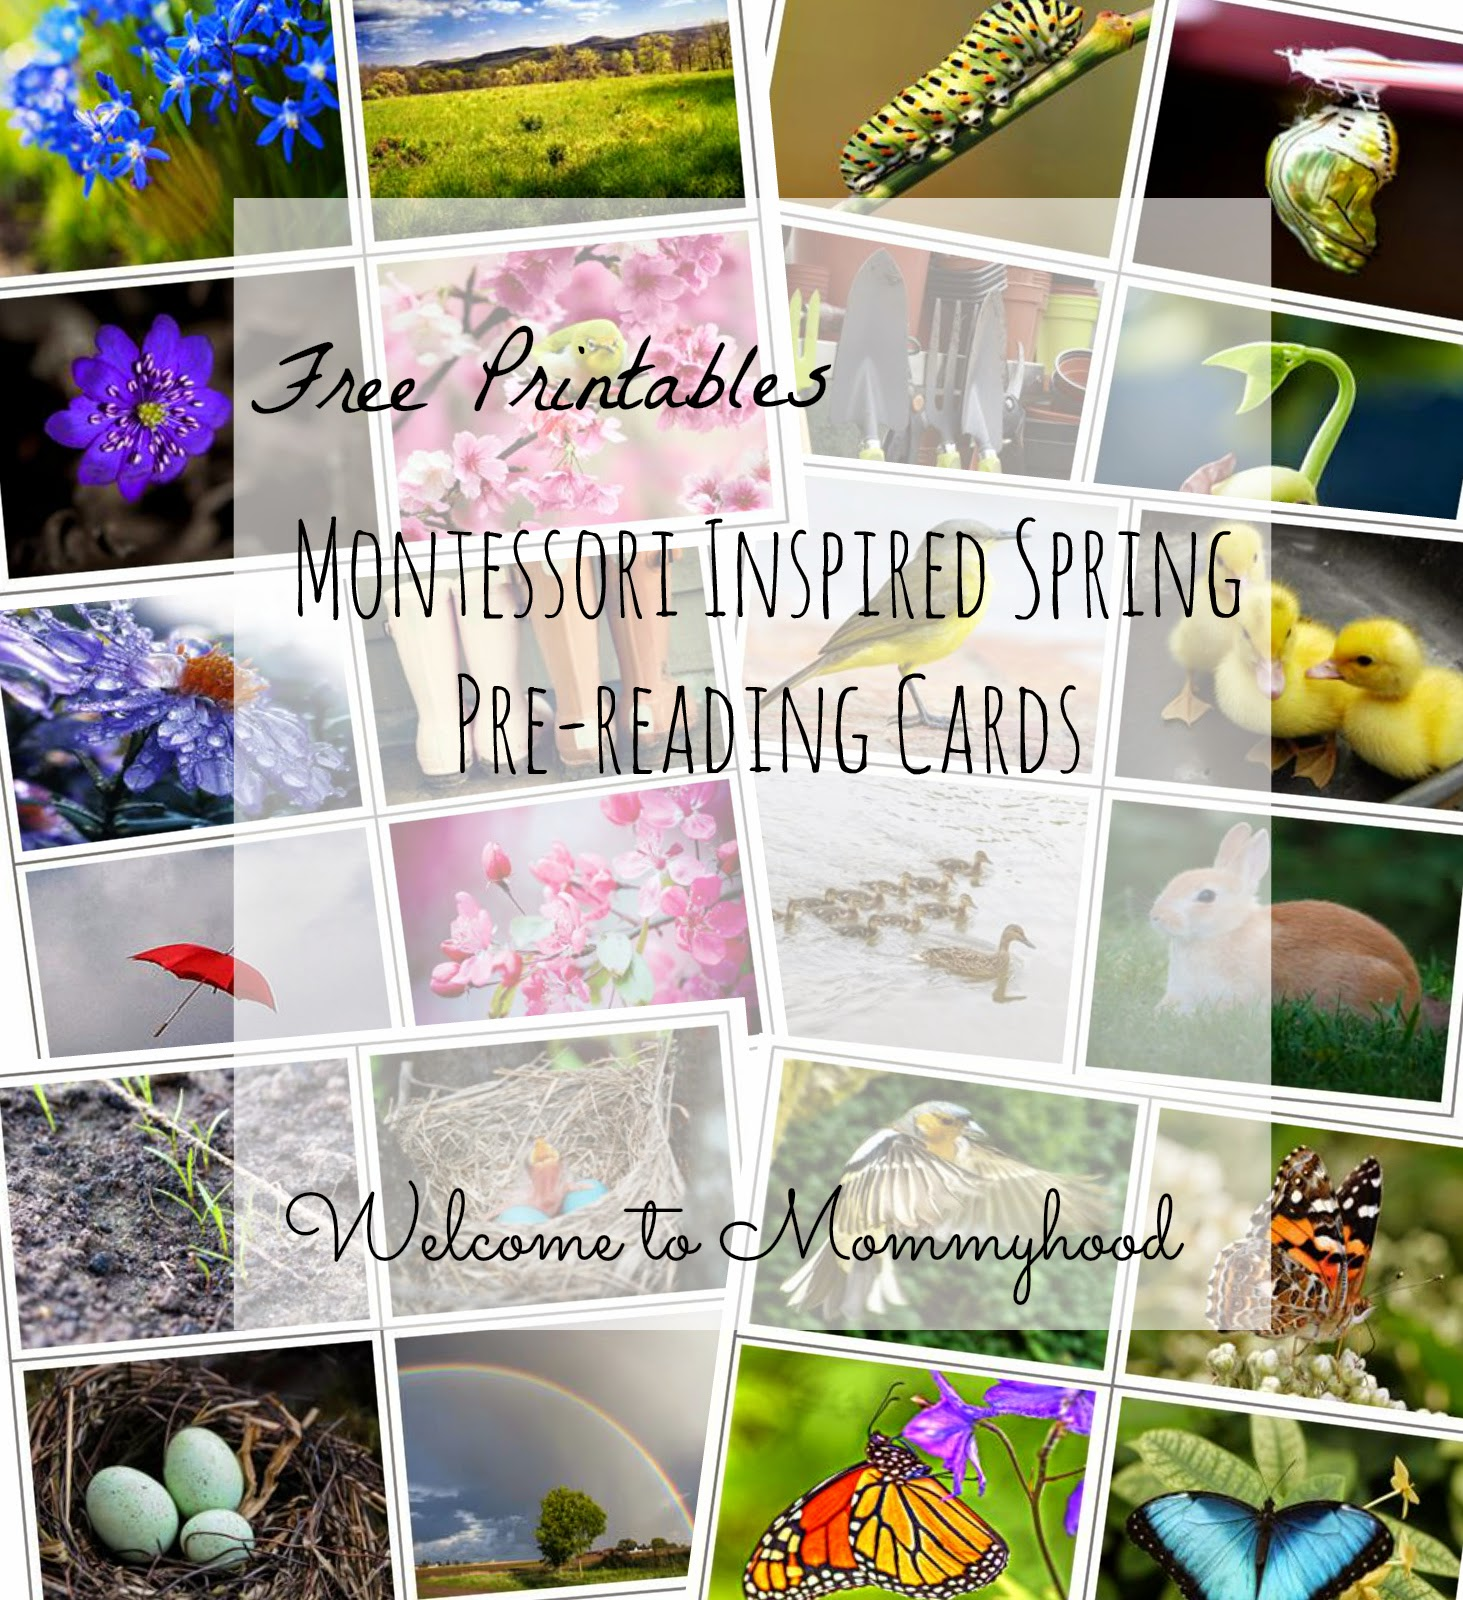 Montessori inspired toddler activities: spring themed prereading cards by Welcome to Mommyhood. These are beautiful cards that can be used as a matching game, memory game, or simply to show children images of springtime!  #montessori, #toddleractivities